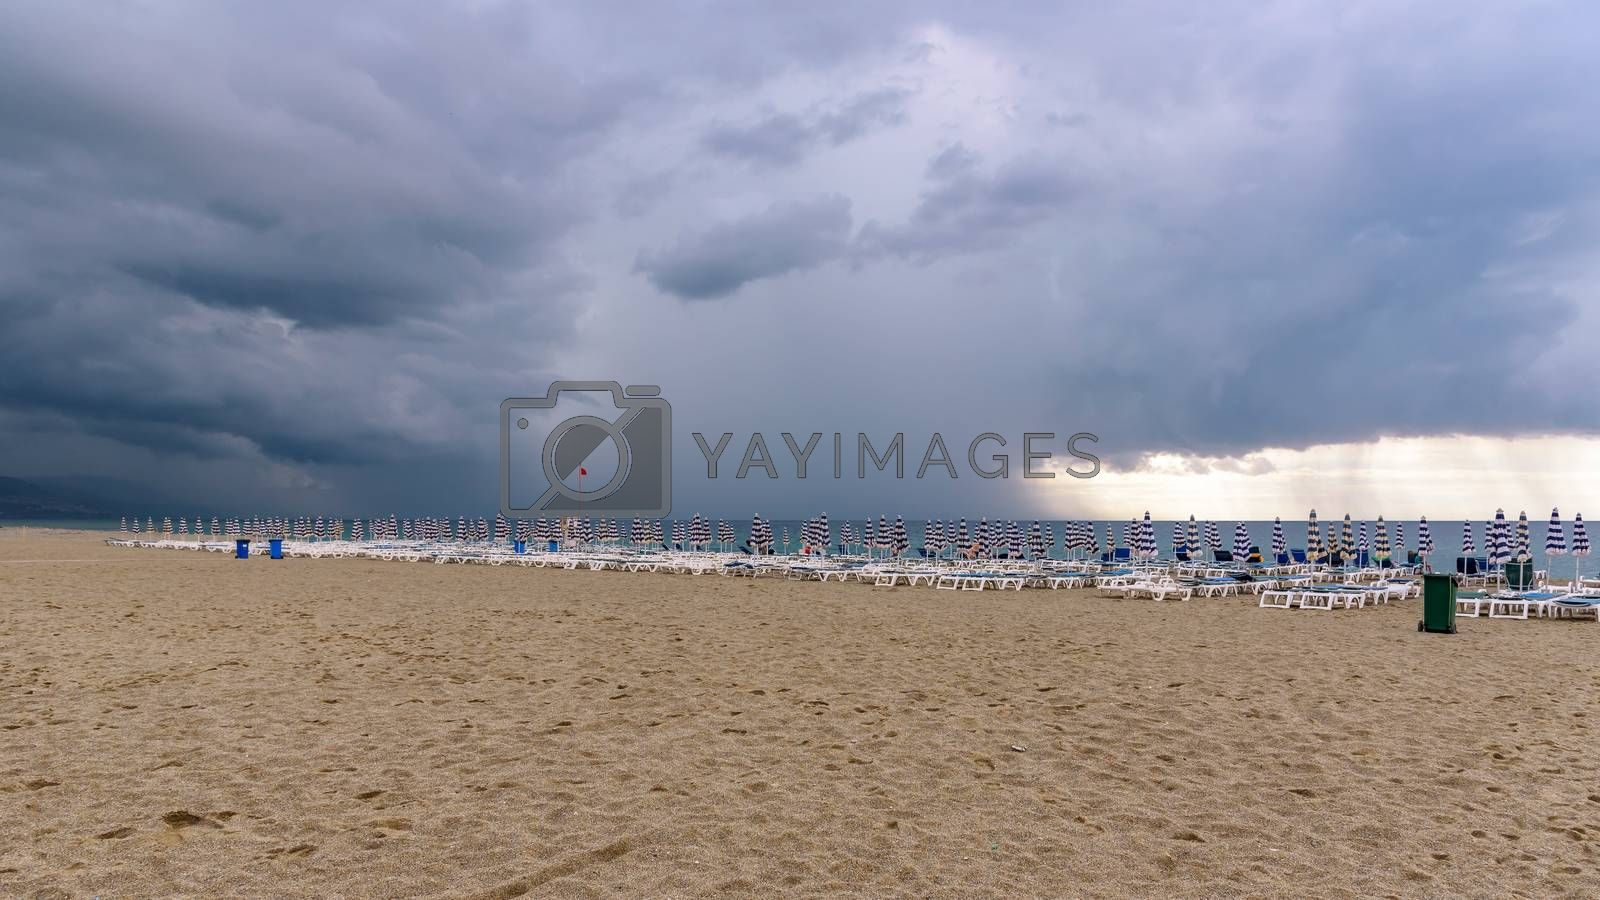 Sunbeds and umbrellas on the calabrian beach before the storm